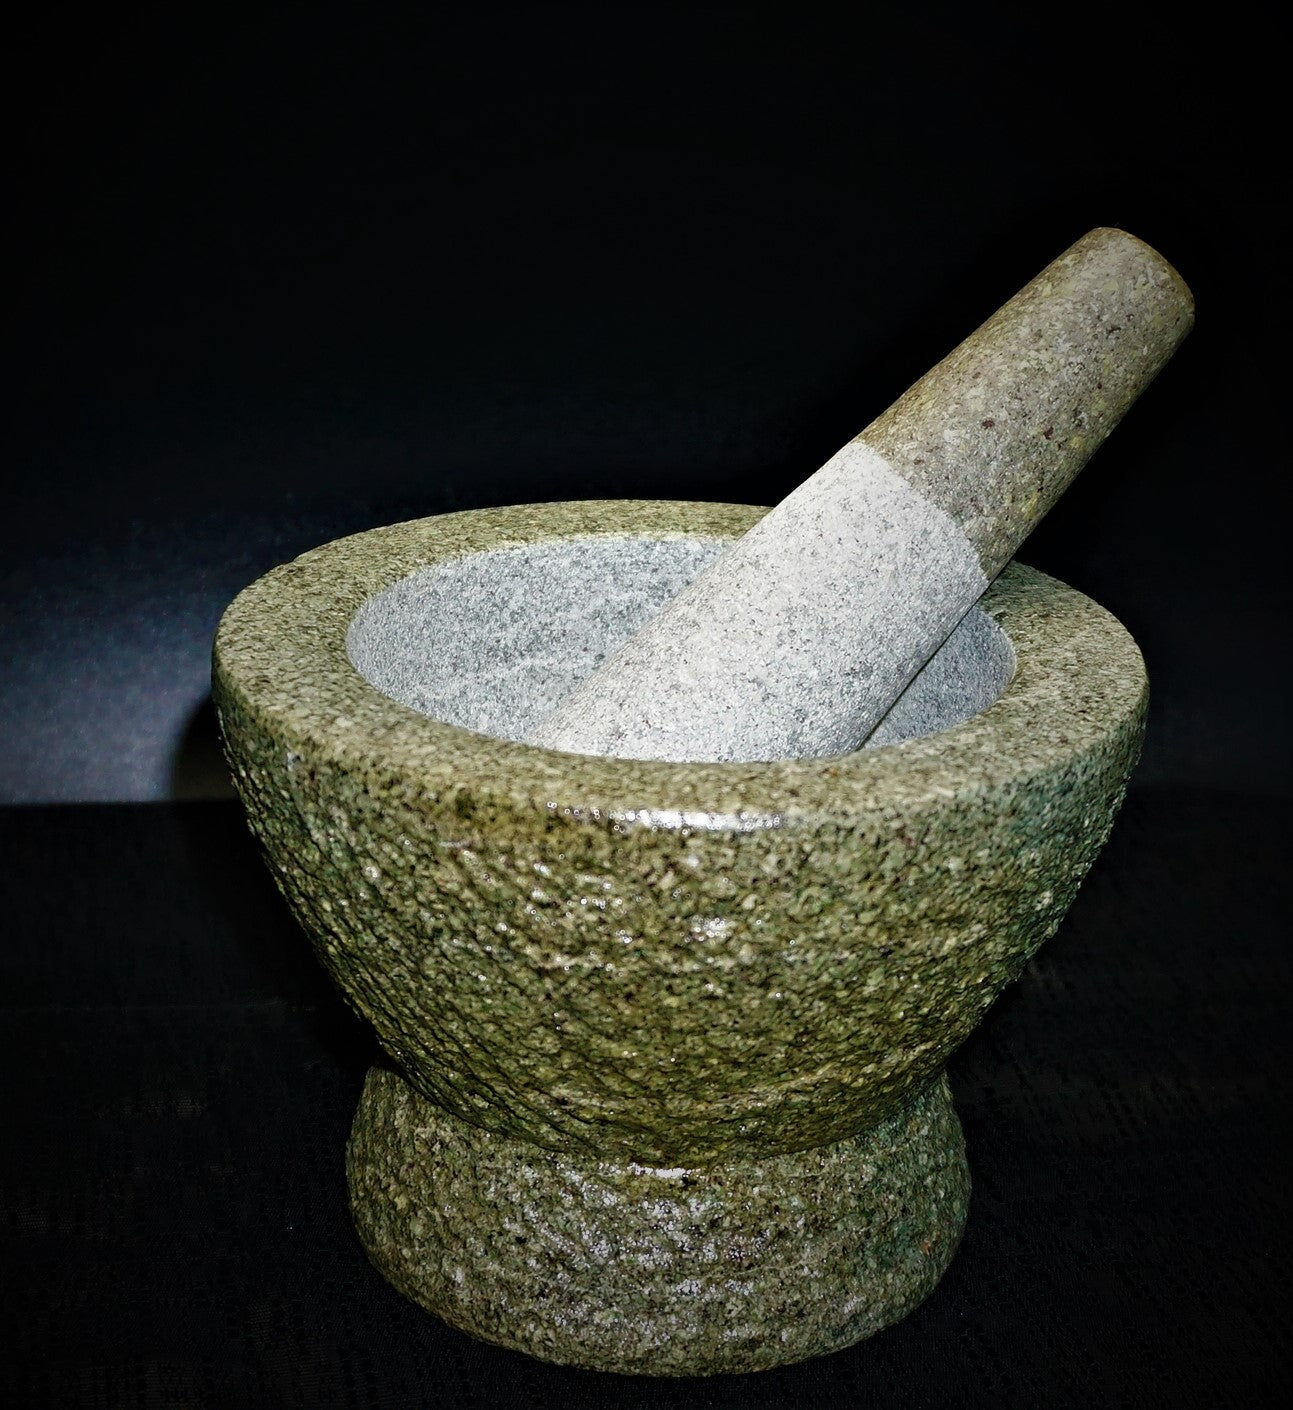 Rock Mortar & Pestle - Large - Stone